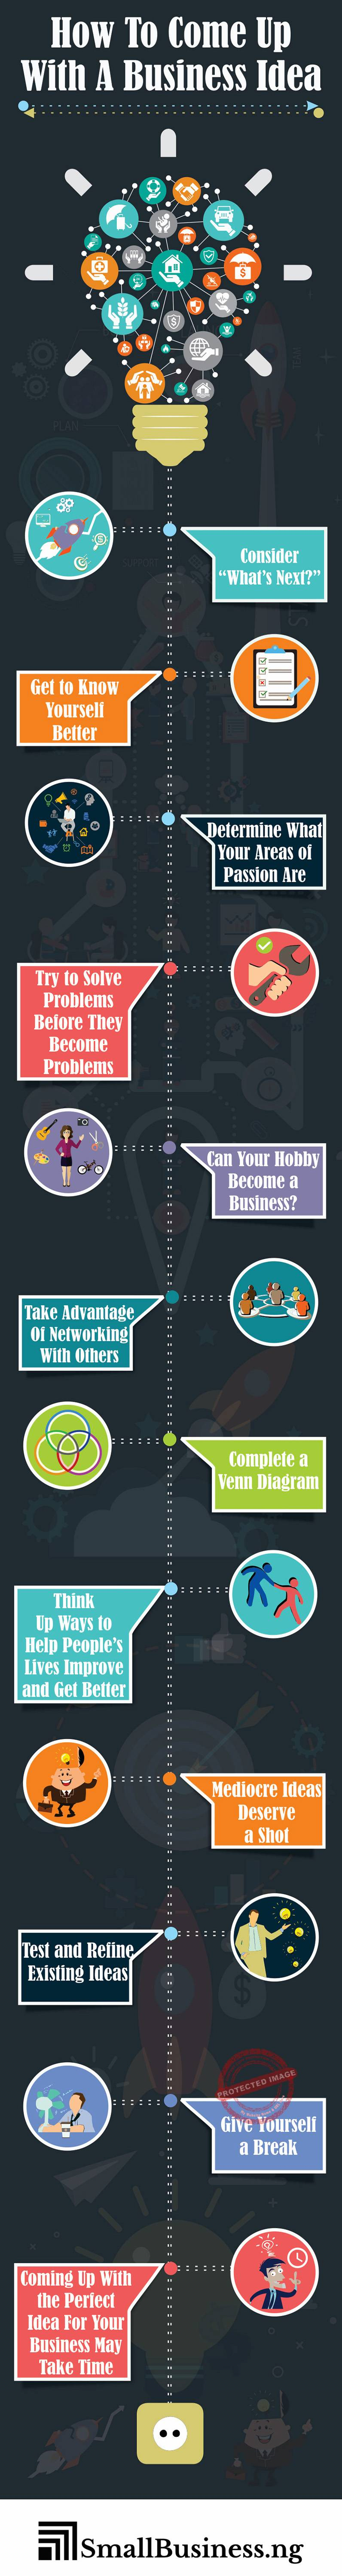 How to come up with a business idea infographic